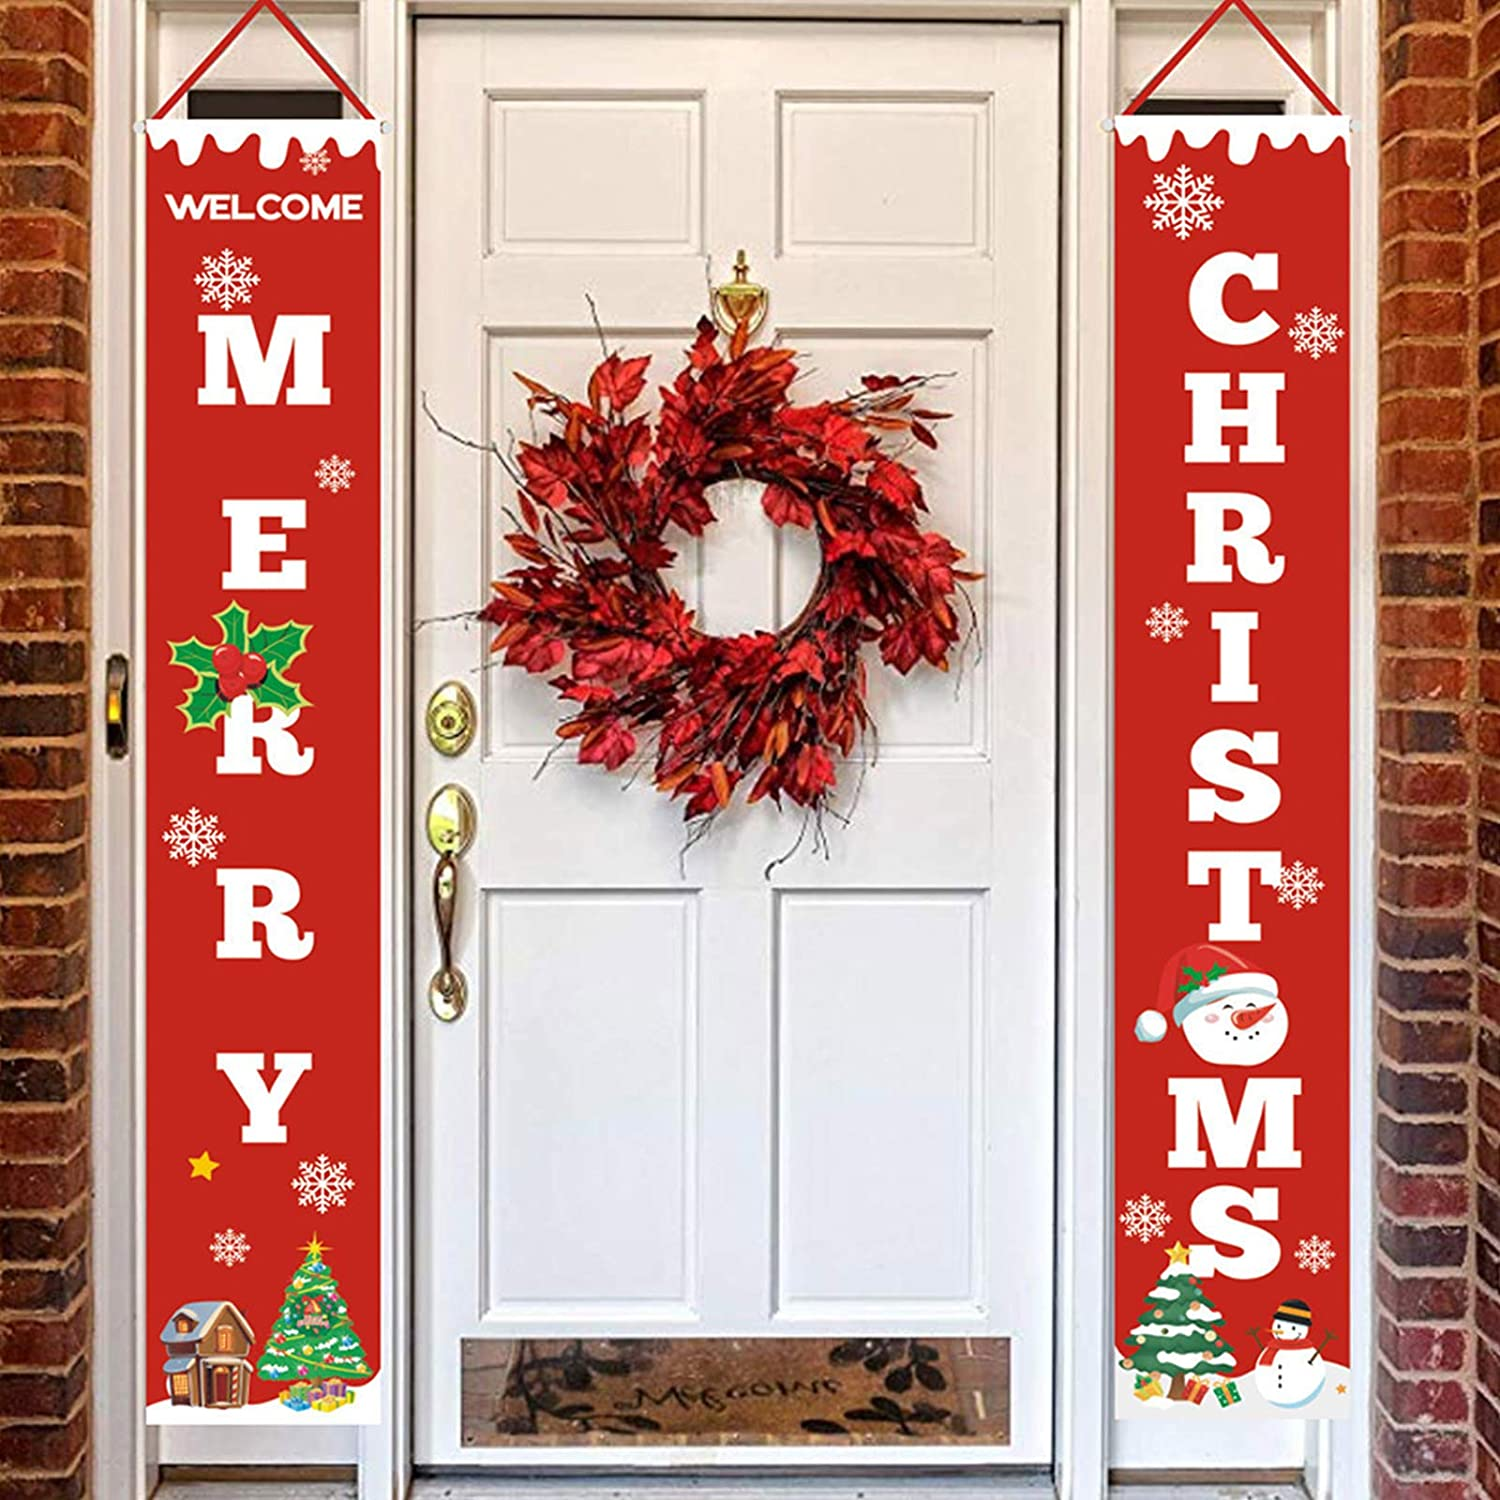 Merry Christmas Banners, Xmas Hanging Porch Signs Decorations Indoor Outdoor, New Year Party Porch Signs for Front Door Yard Home Decor Supplies,72 x 12 Inch (Merry Christmas)